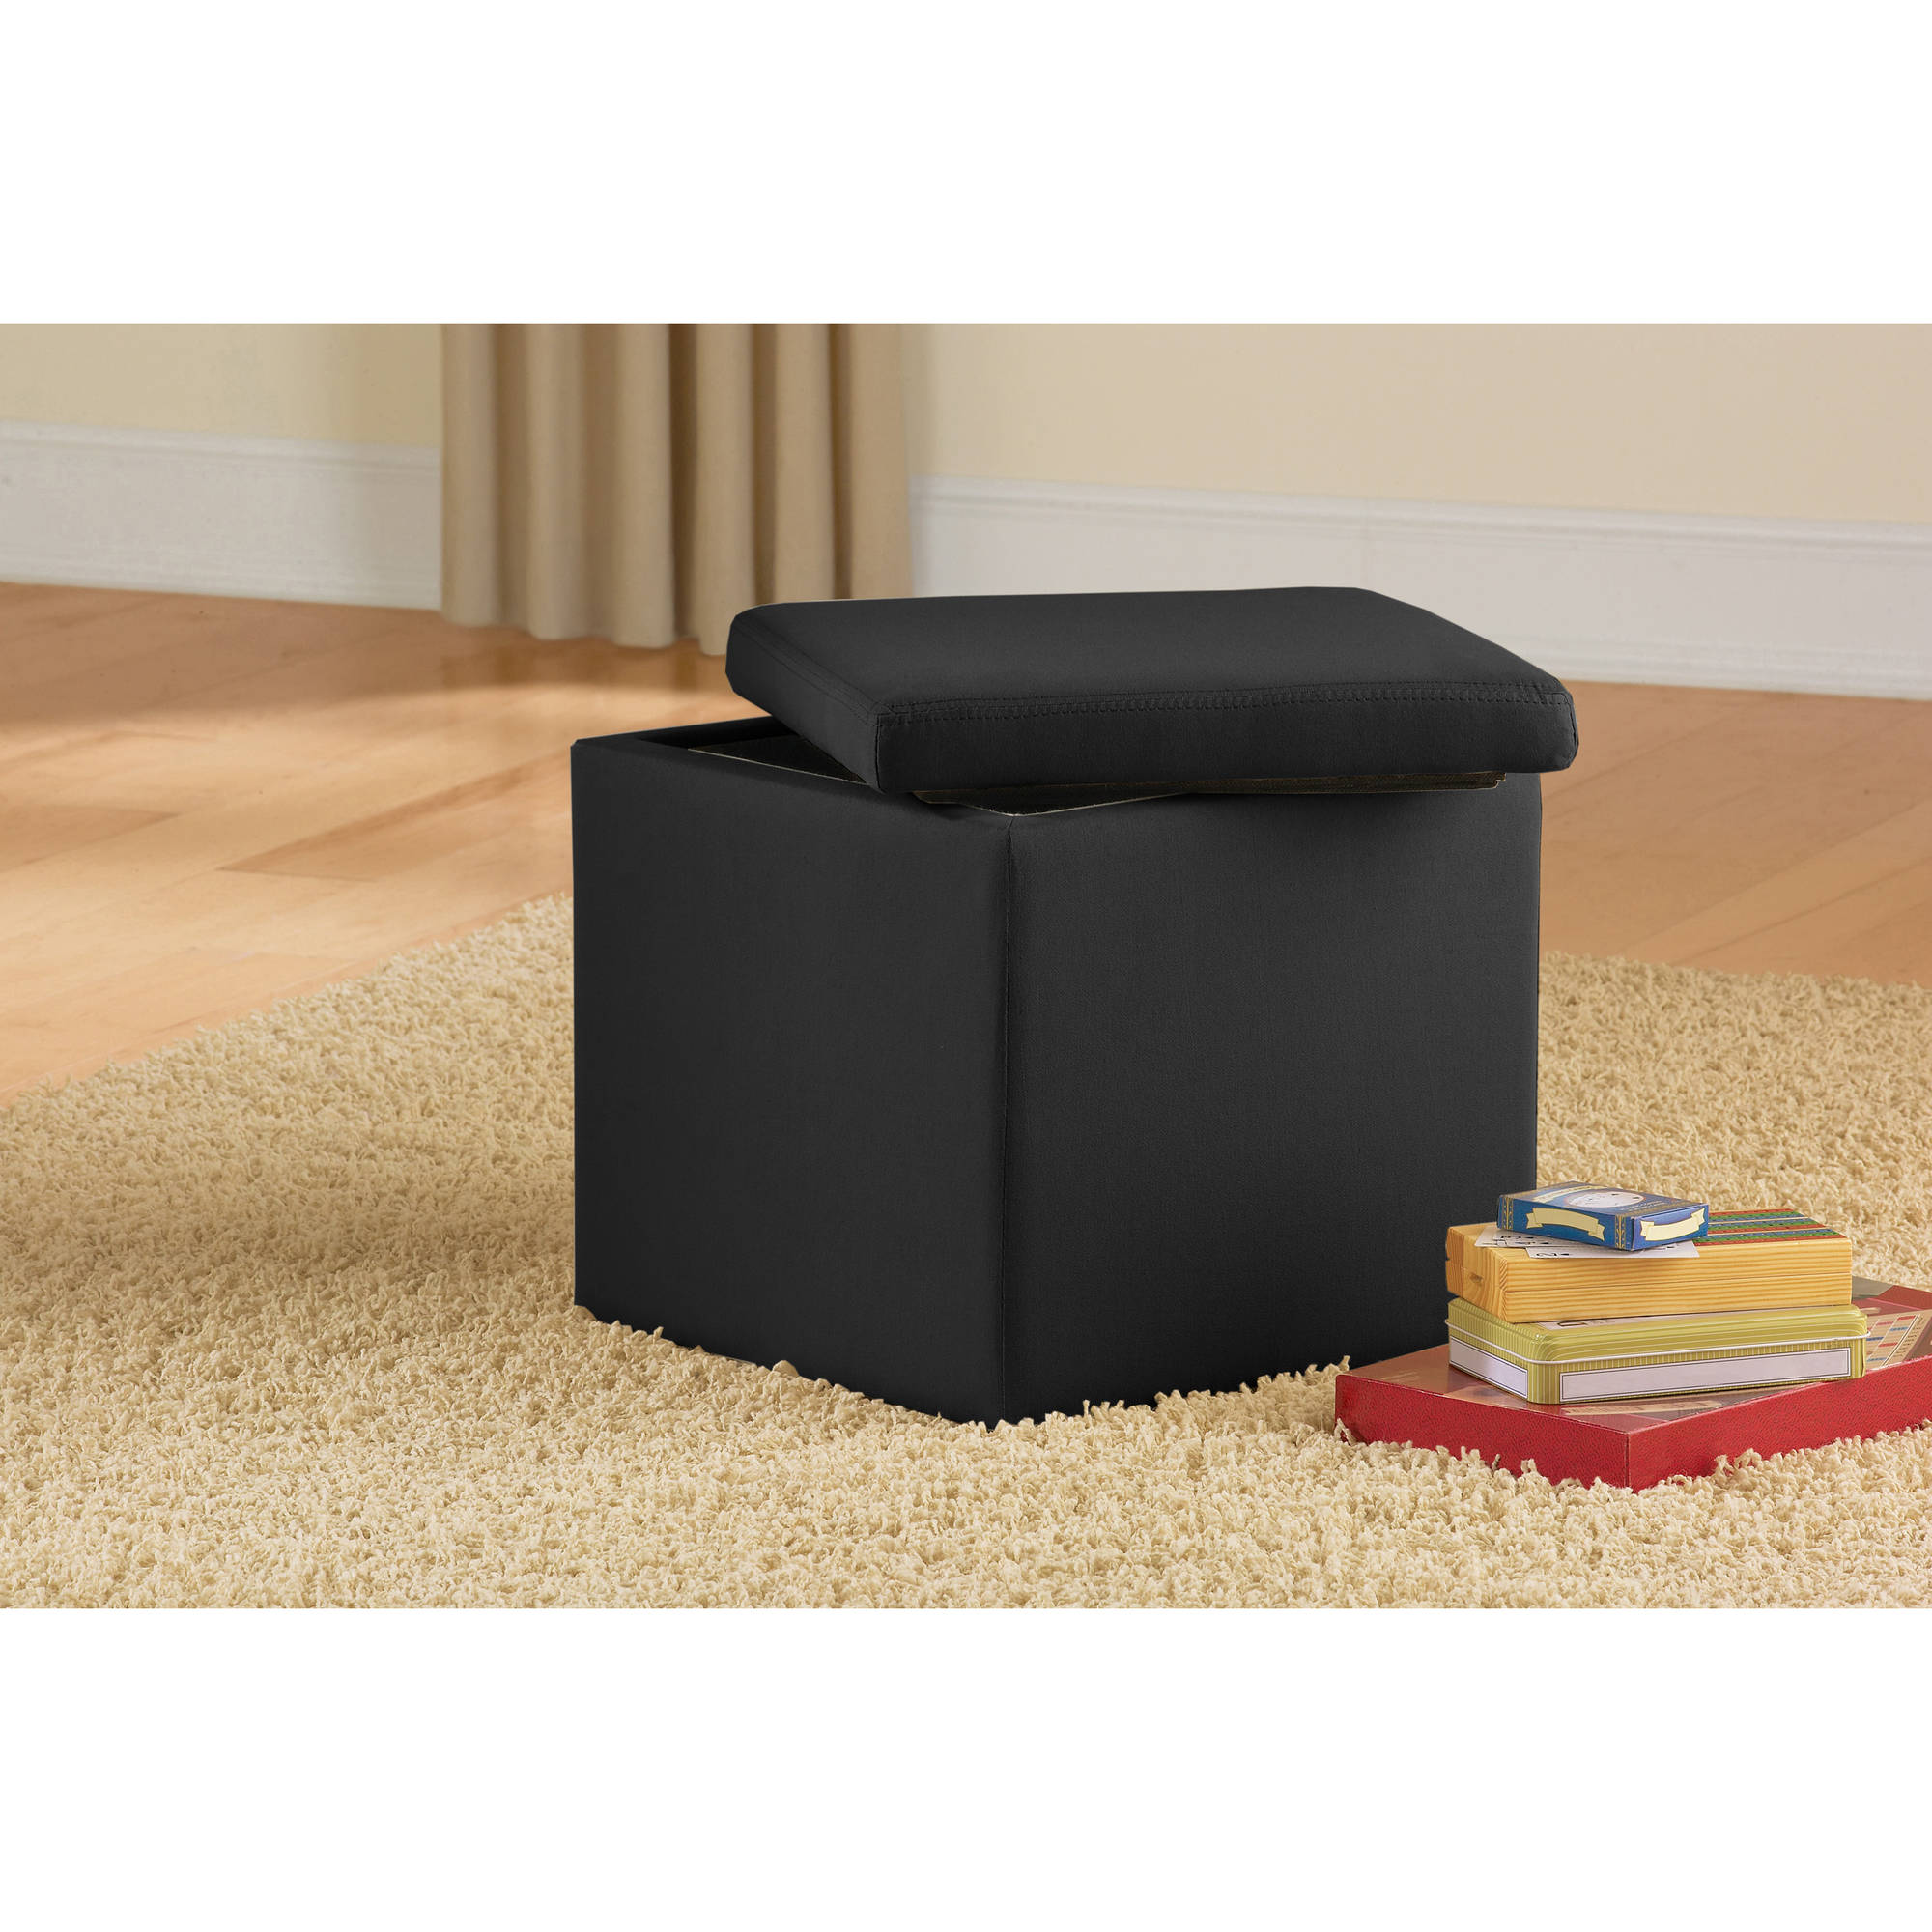 Mainstays Faux Suede Ultra Storage Ottoman Multiple Colors - Walmart.com  sc 1 st  Walmart & Mainstays Faux Suede Ultra Storage Ottoman Multiple Colors ...